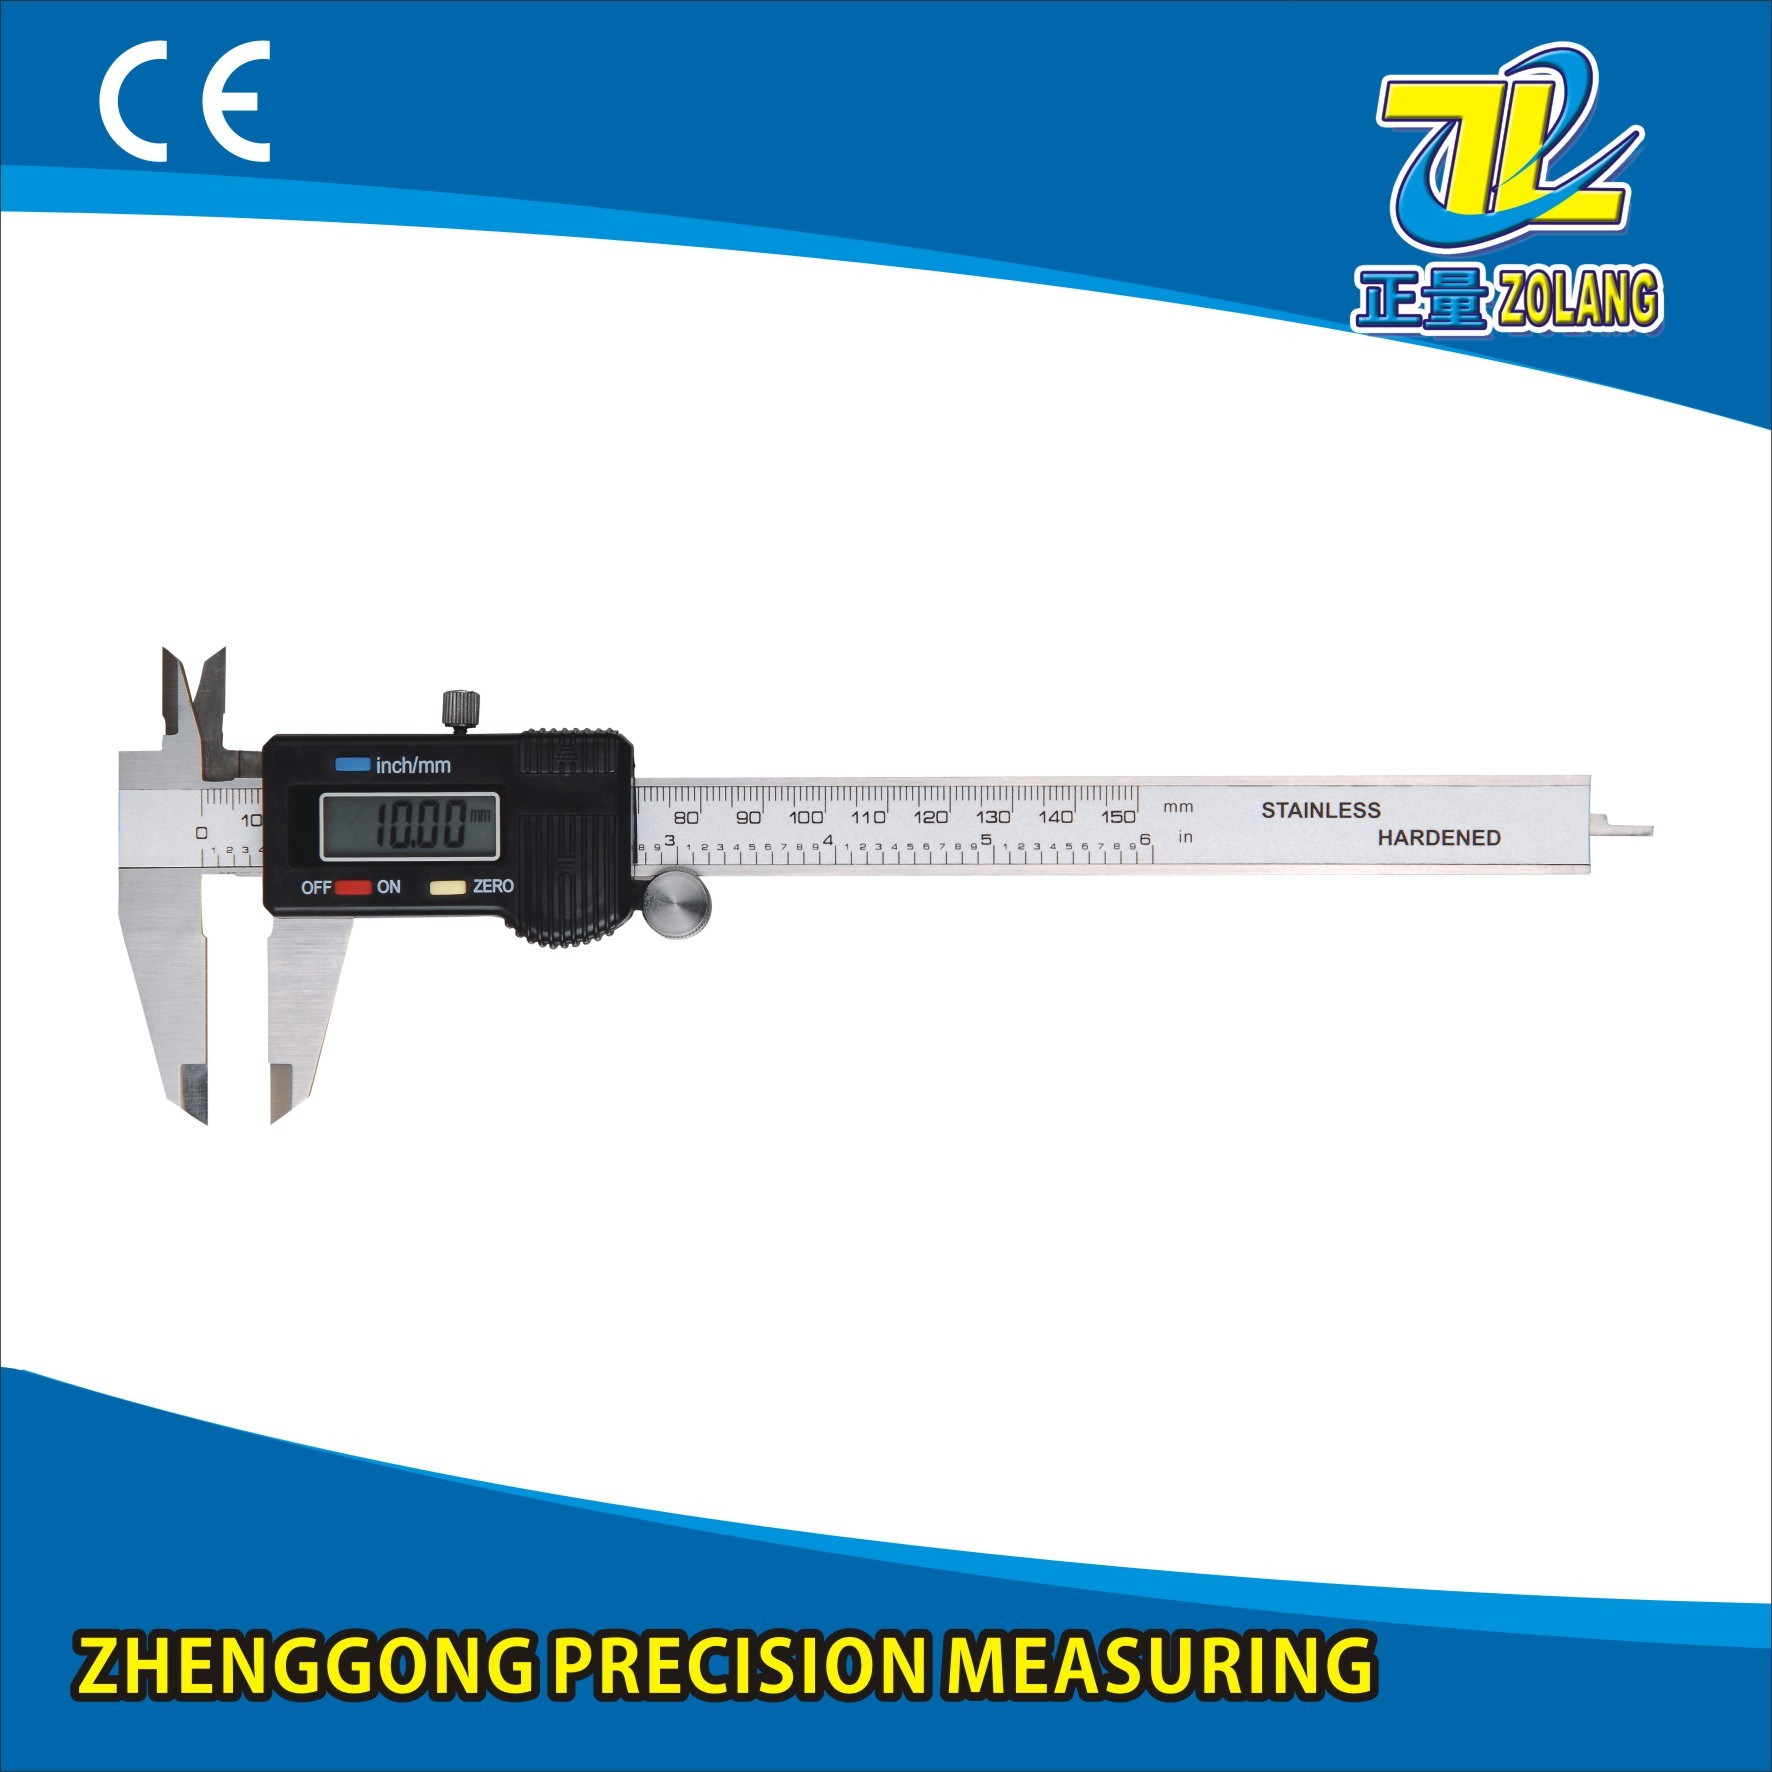 Hot Sell Industrial-Grade Stainless Steel Digital Display Calipers Measuring Tool